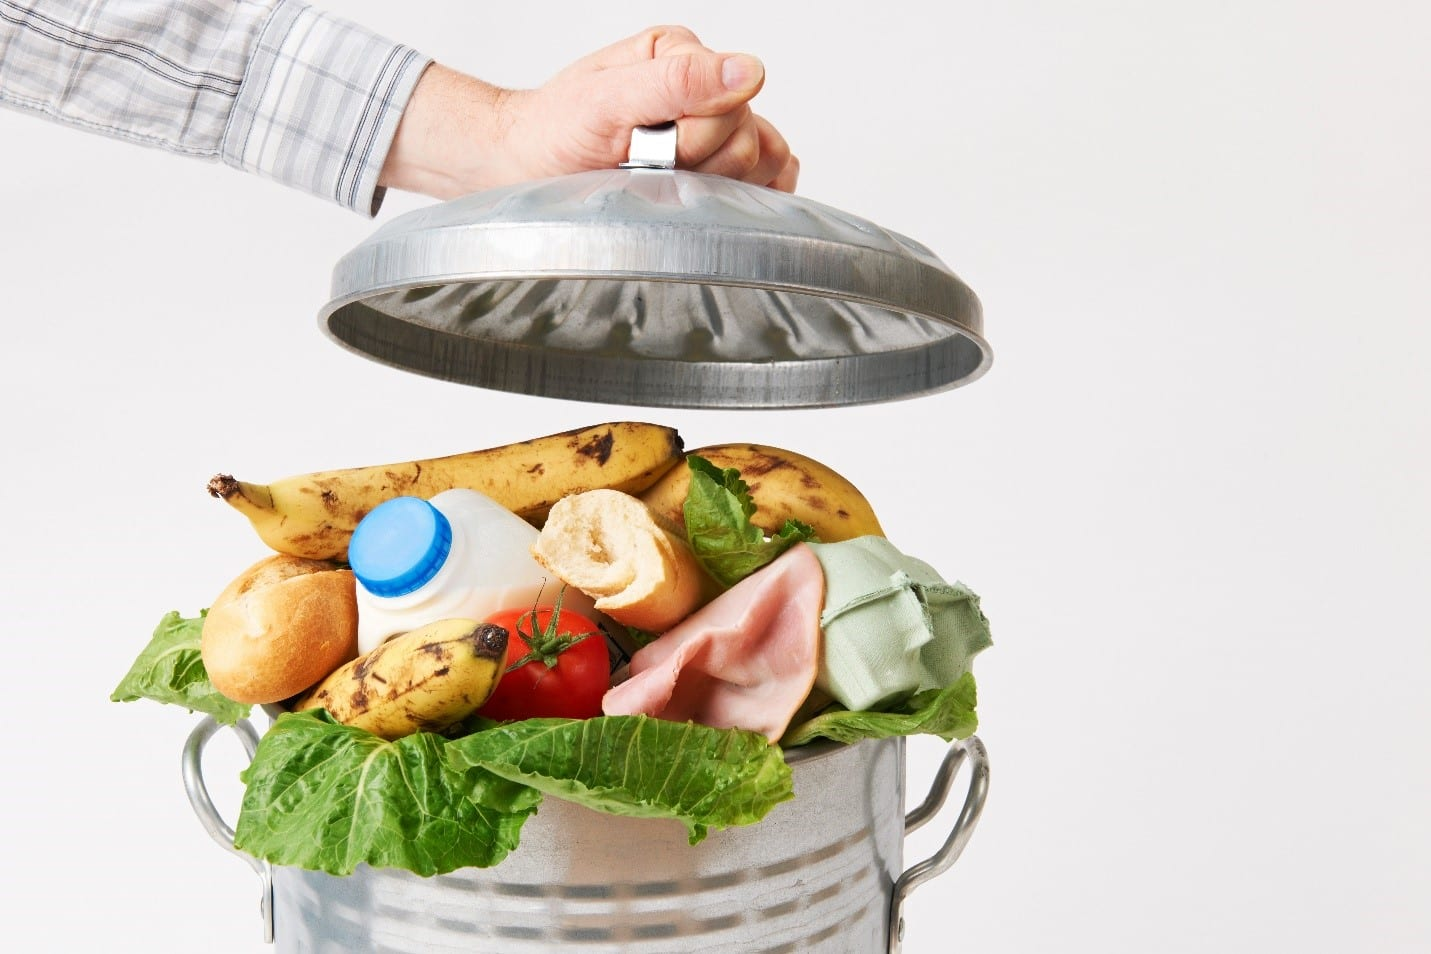 A trashcan full of still edible food with a man holding open the lid